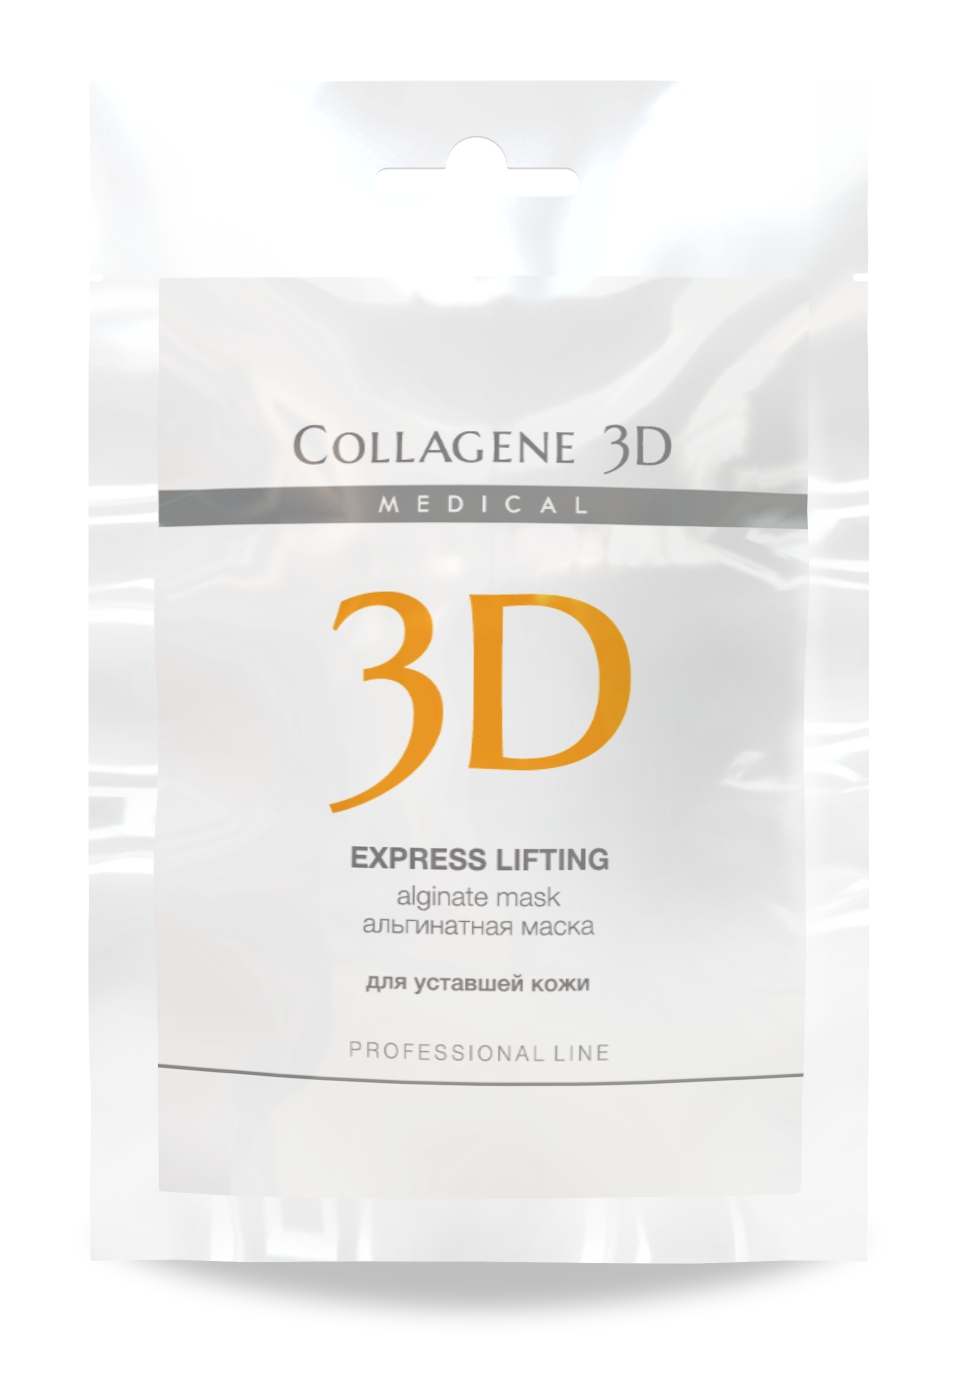 Купить MEDICAL COLLAGENE 3D Маска альгинатная с экстрактом женьшеня для лица и тела / Express Lifting 30 г